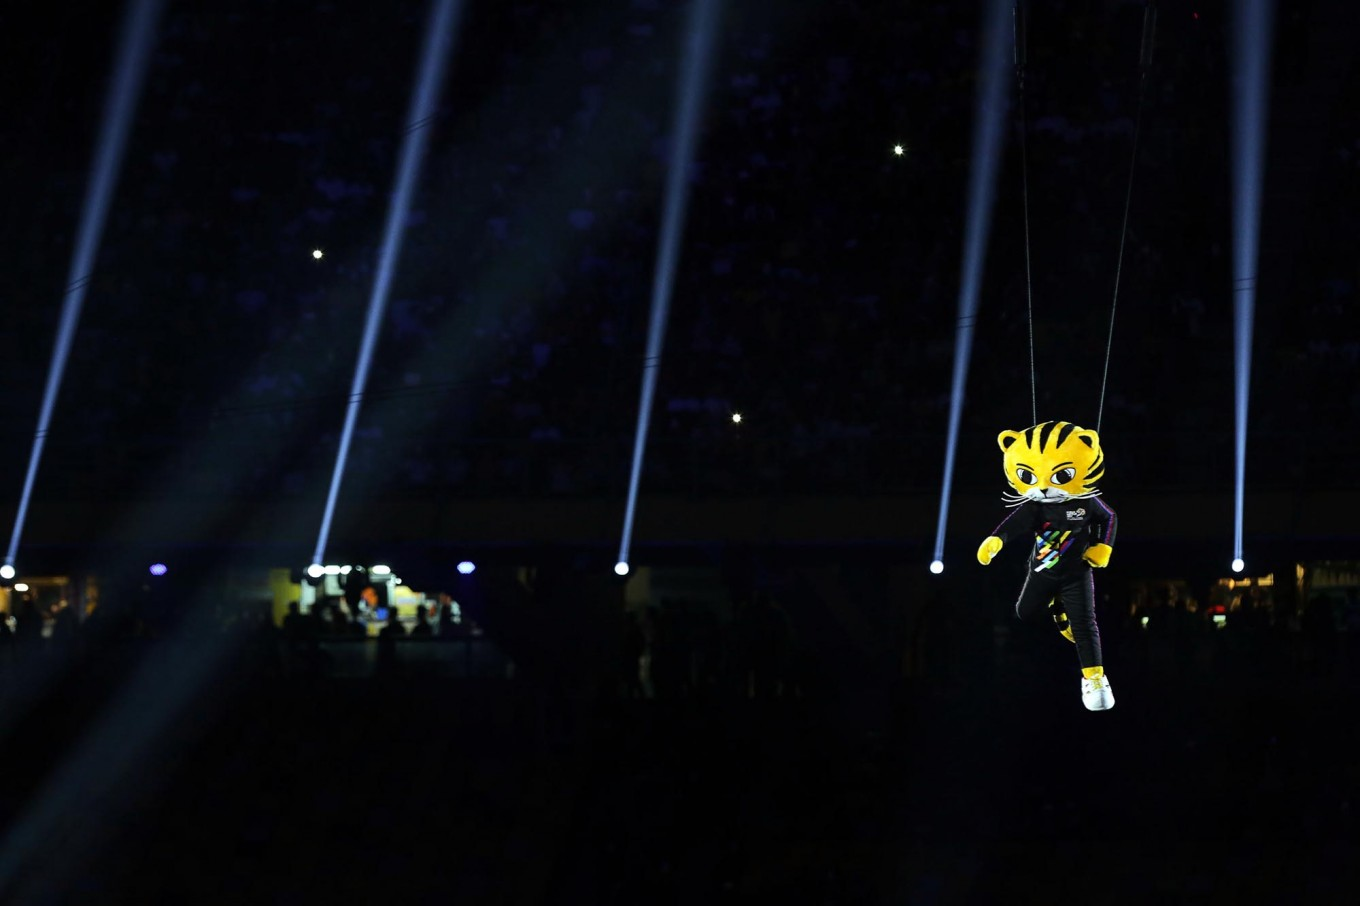 SEA Games mascot Rimau makes an appearance during the opening ceremony of the SEA Games. JP/Seto Wardhana